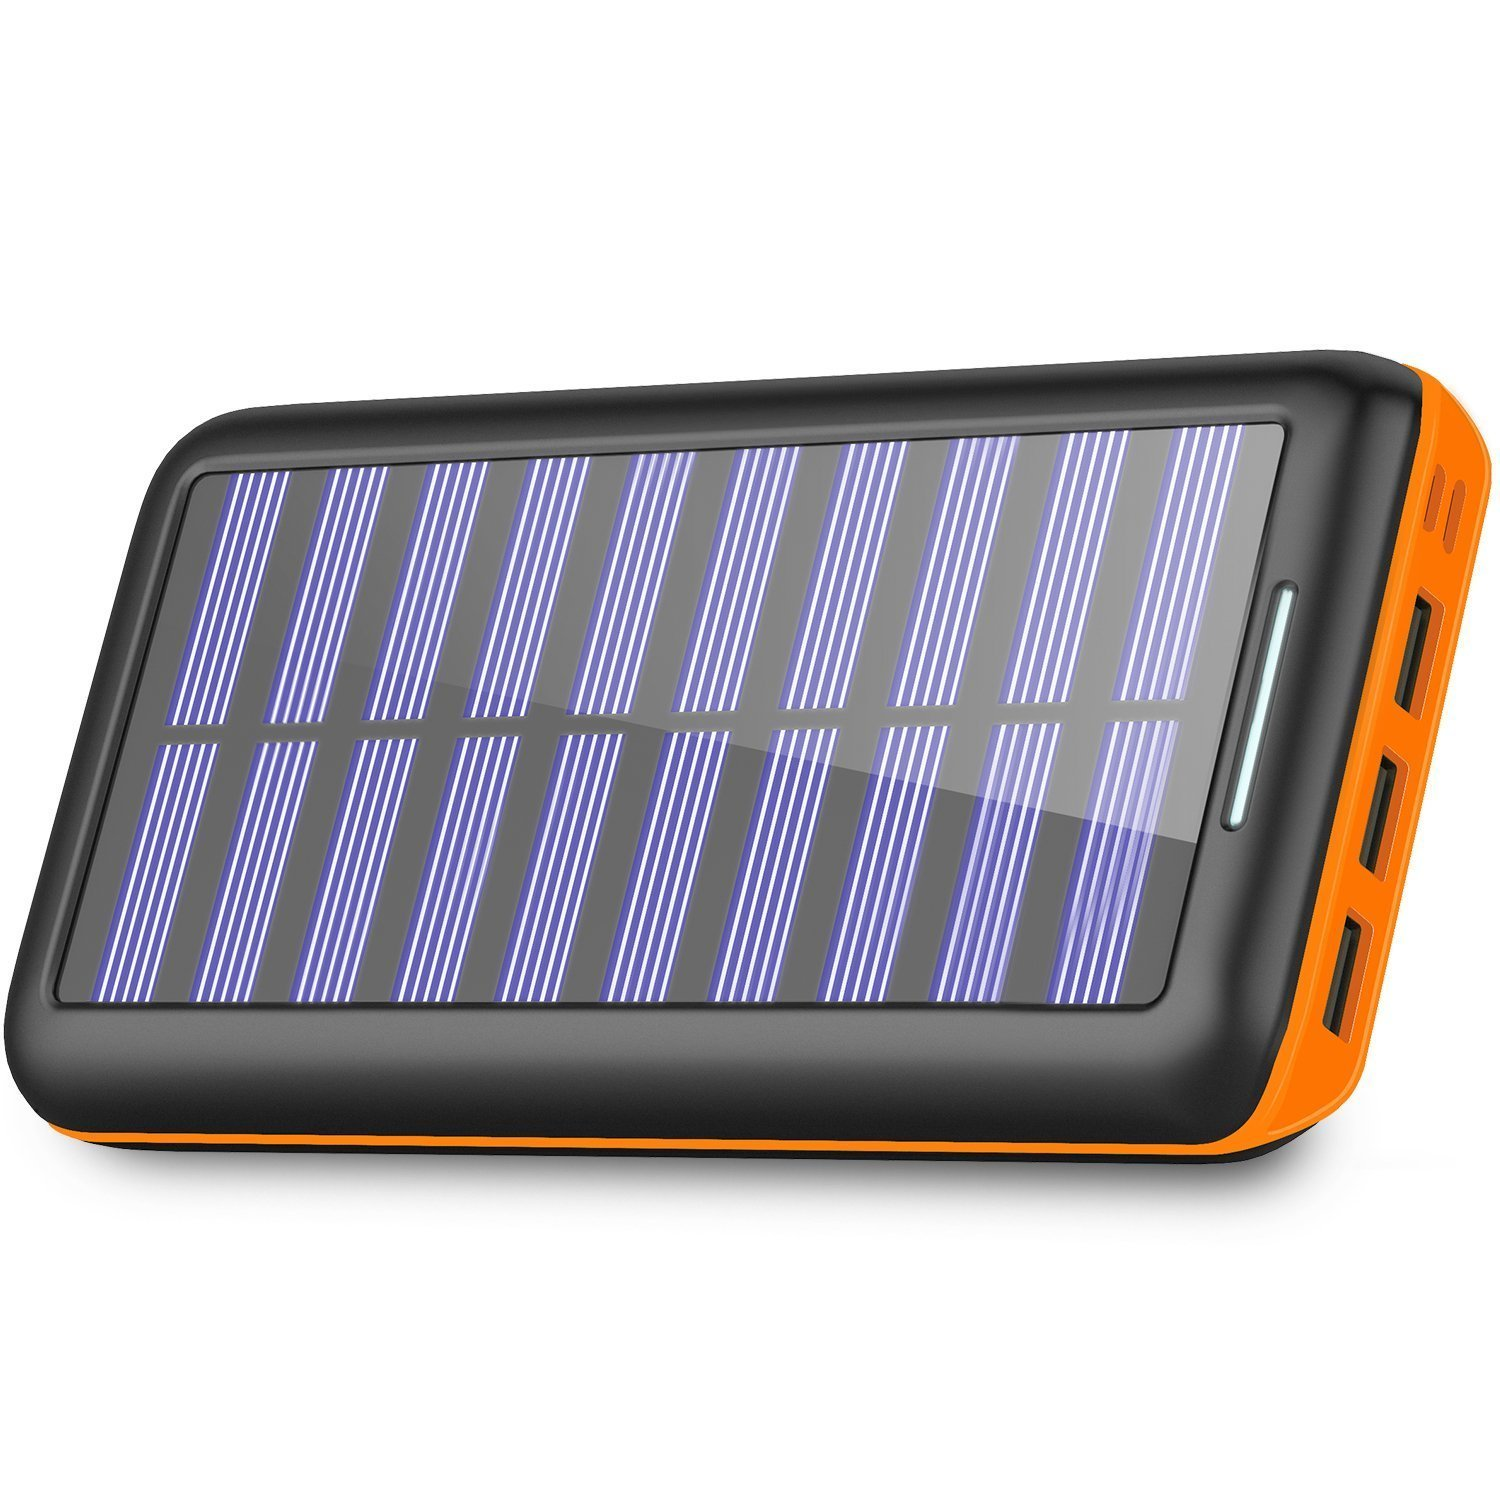 Chargeur Solaire 24000mAh 3 Port iPhone & Android- Solar Charger  Portable Charger Solar Power Bank 3 Fast Charging USB Port and Dual Input (Lightning & Micro) External